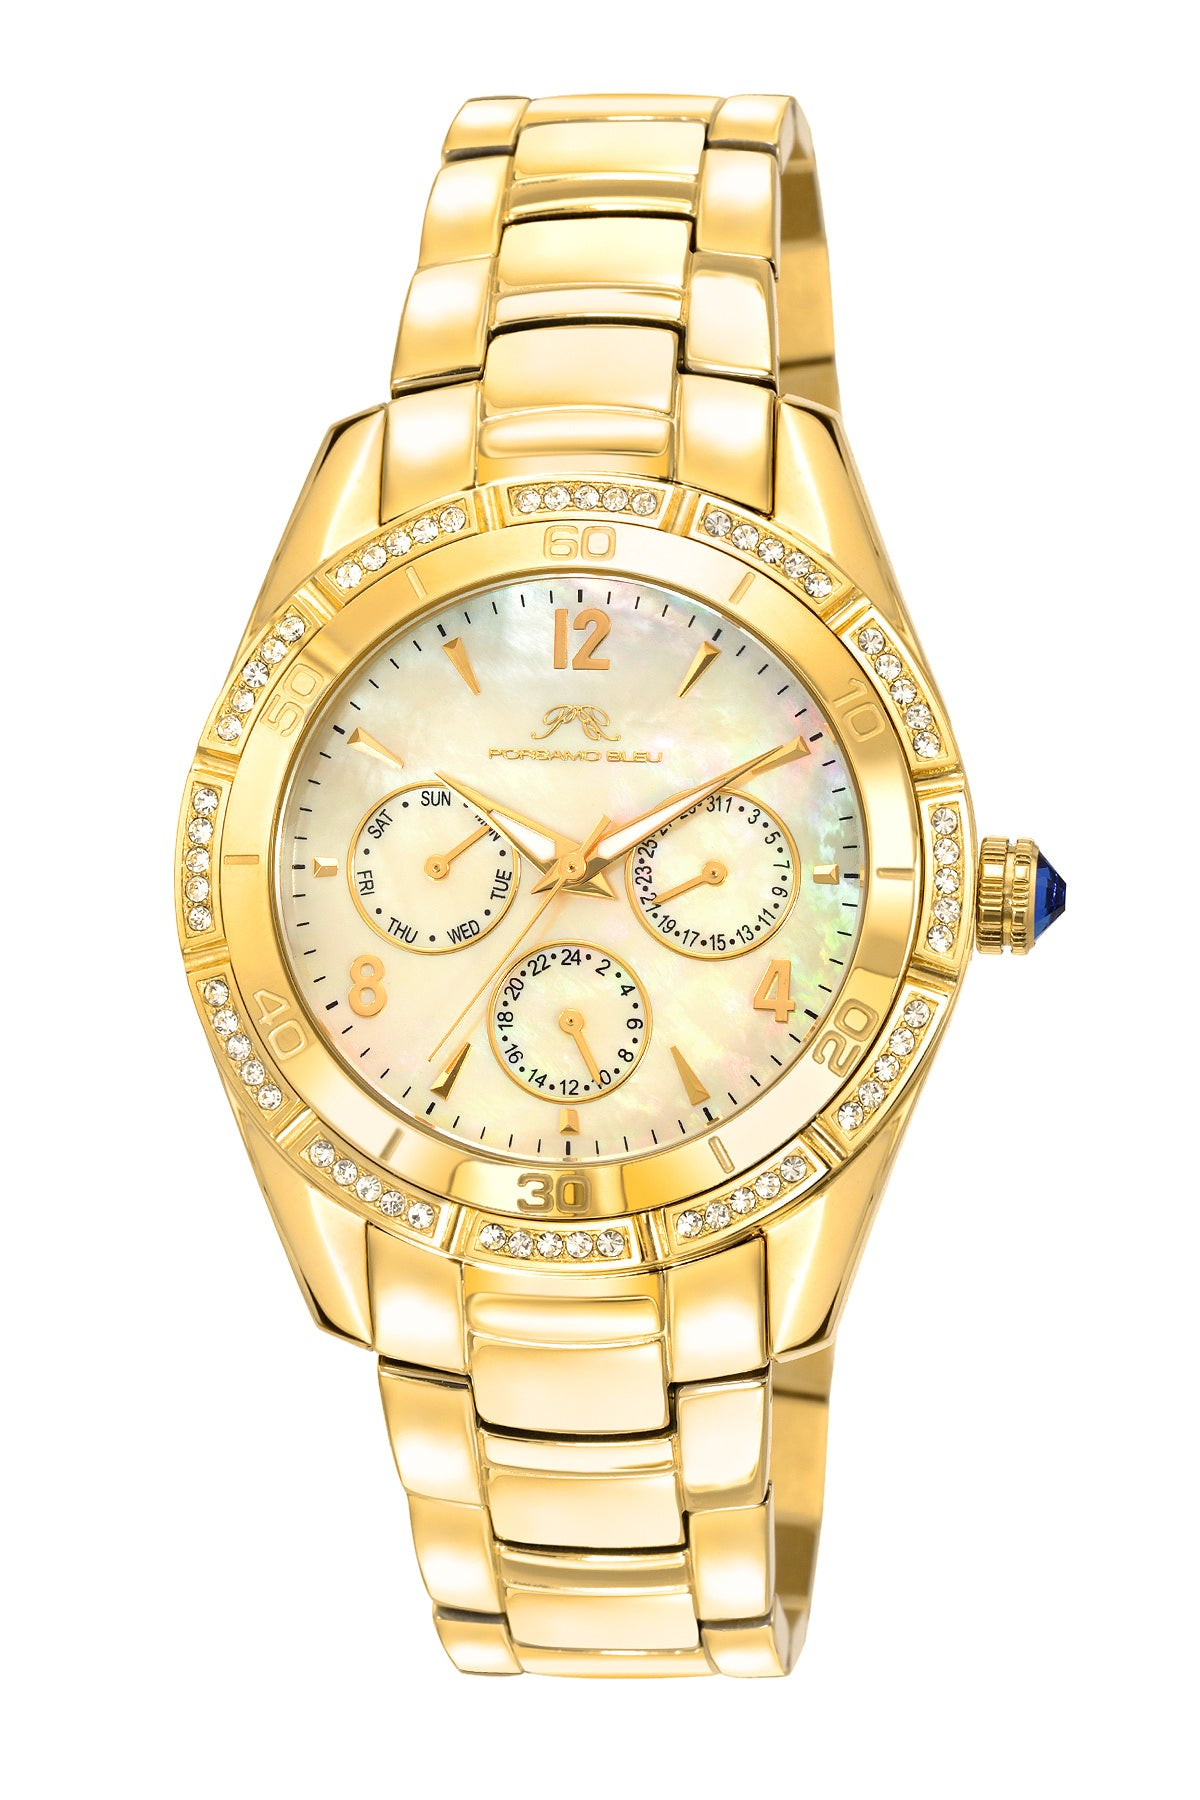 Porsamo Bleu Valentina luxury women's stainless steel watch, gold, white 541BVAS